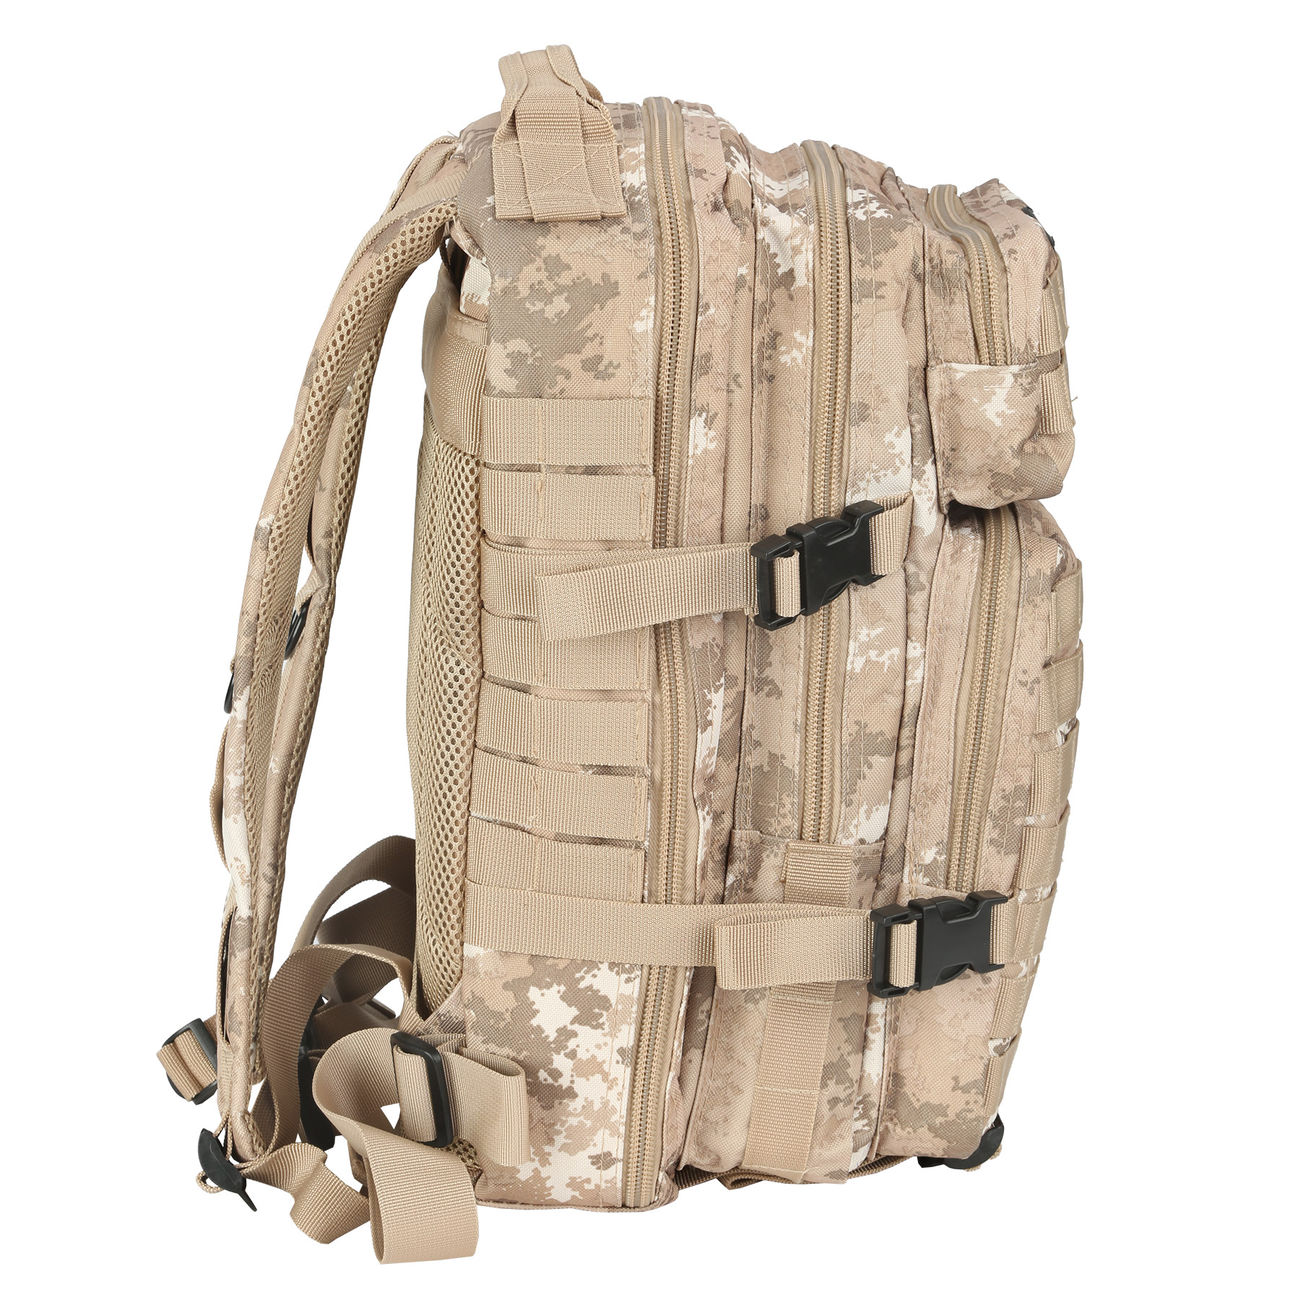 MFH Rucksack Assault I vegetato desert 1